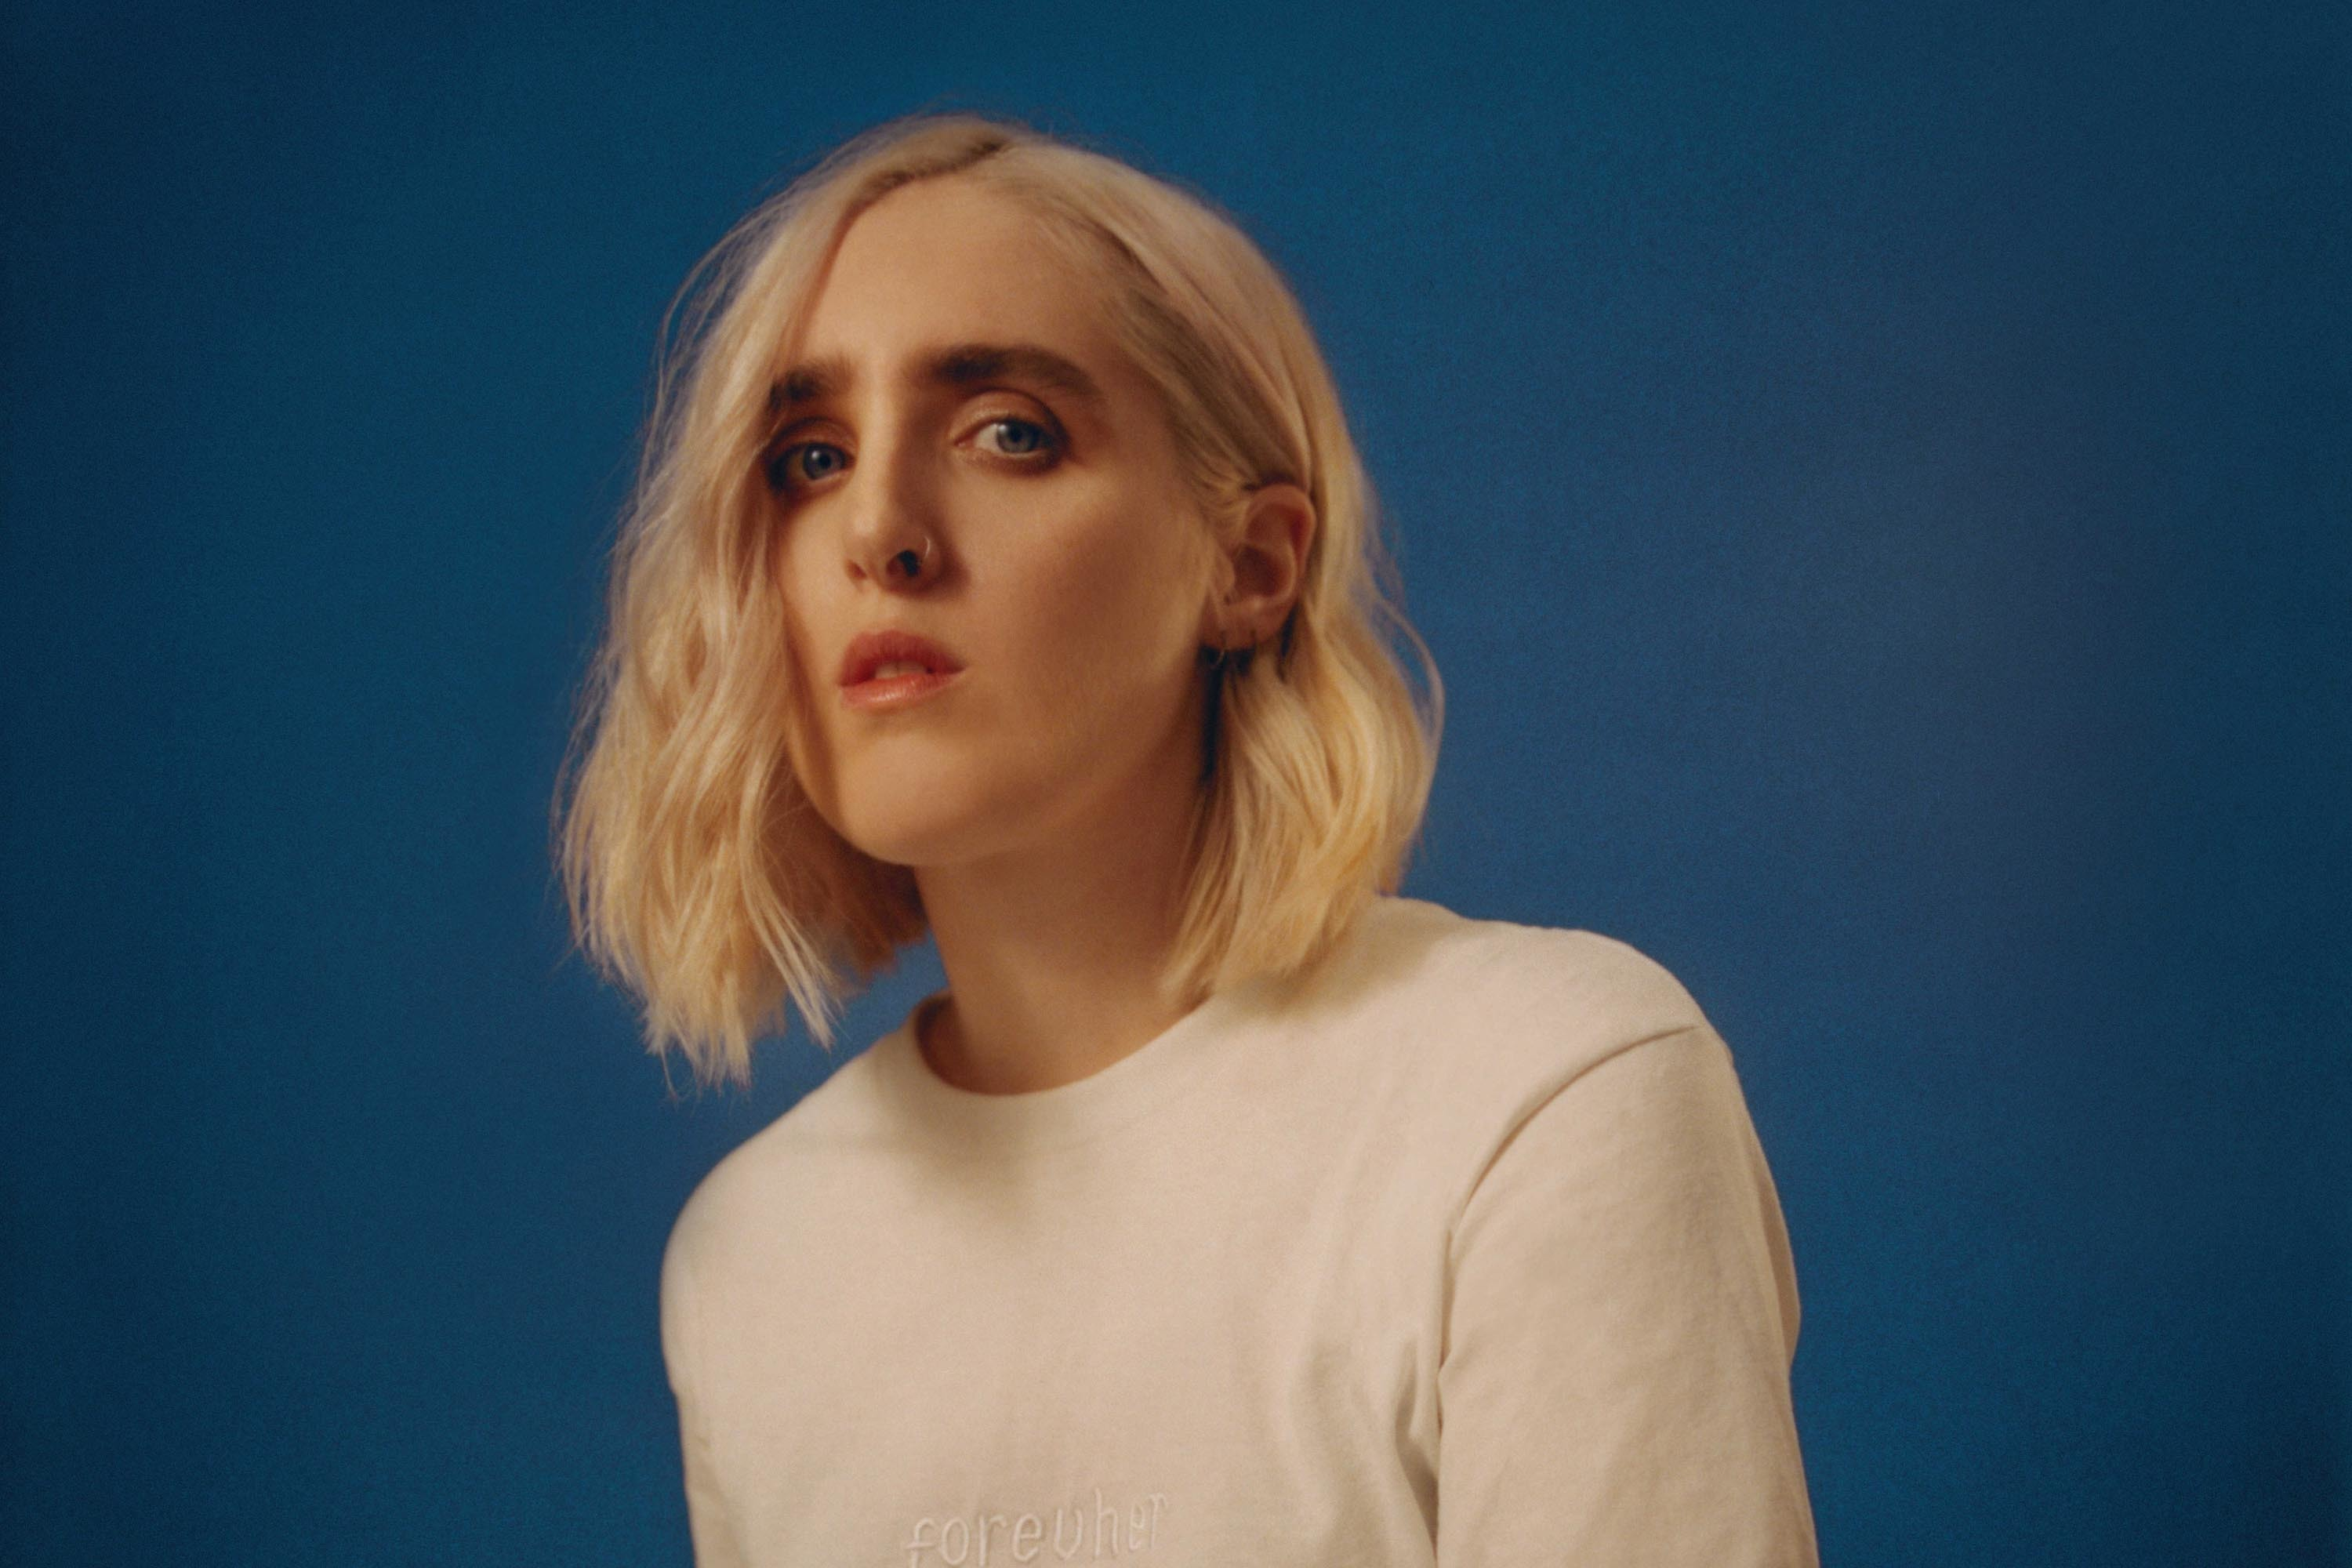 Shura returns with new single 'BKLYNLDN', announces two live shows